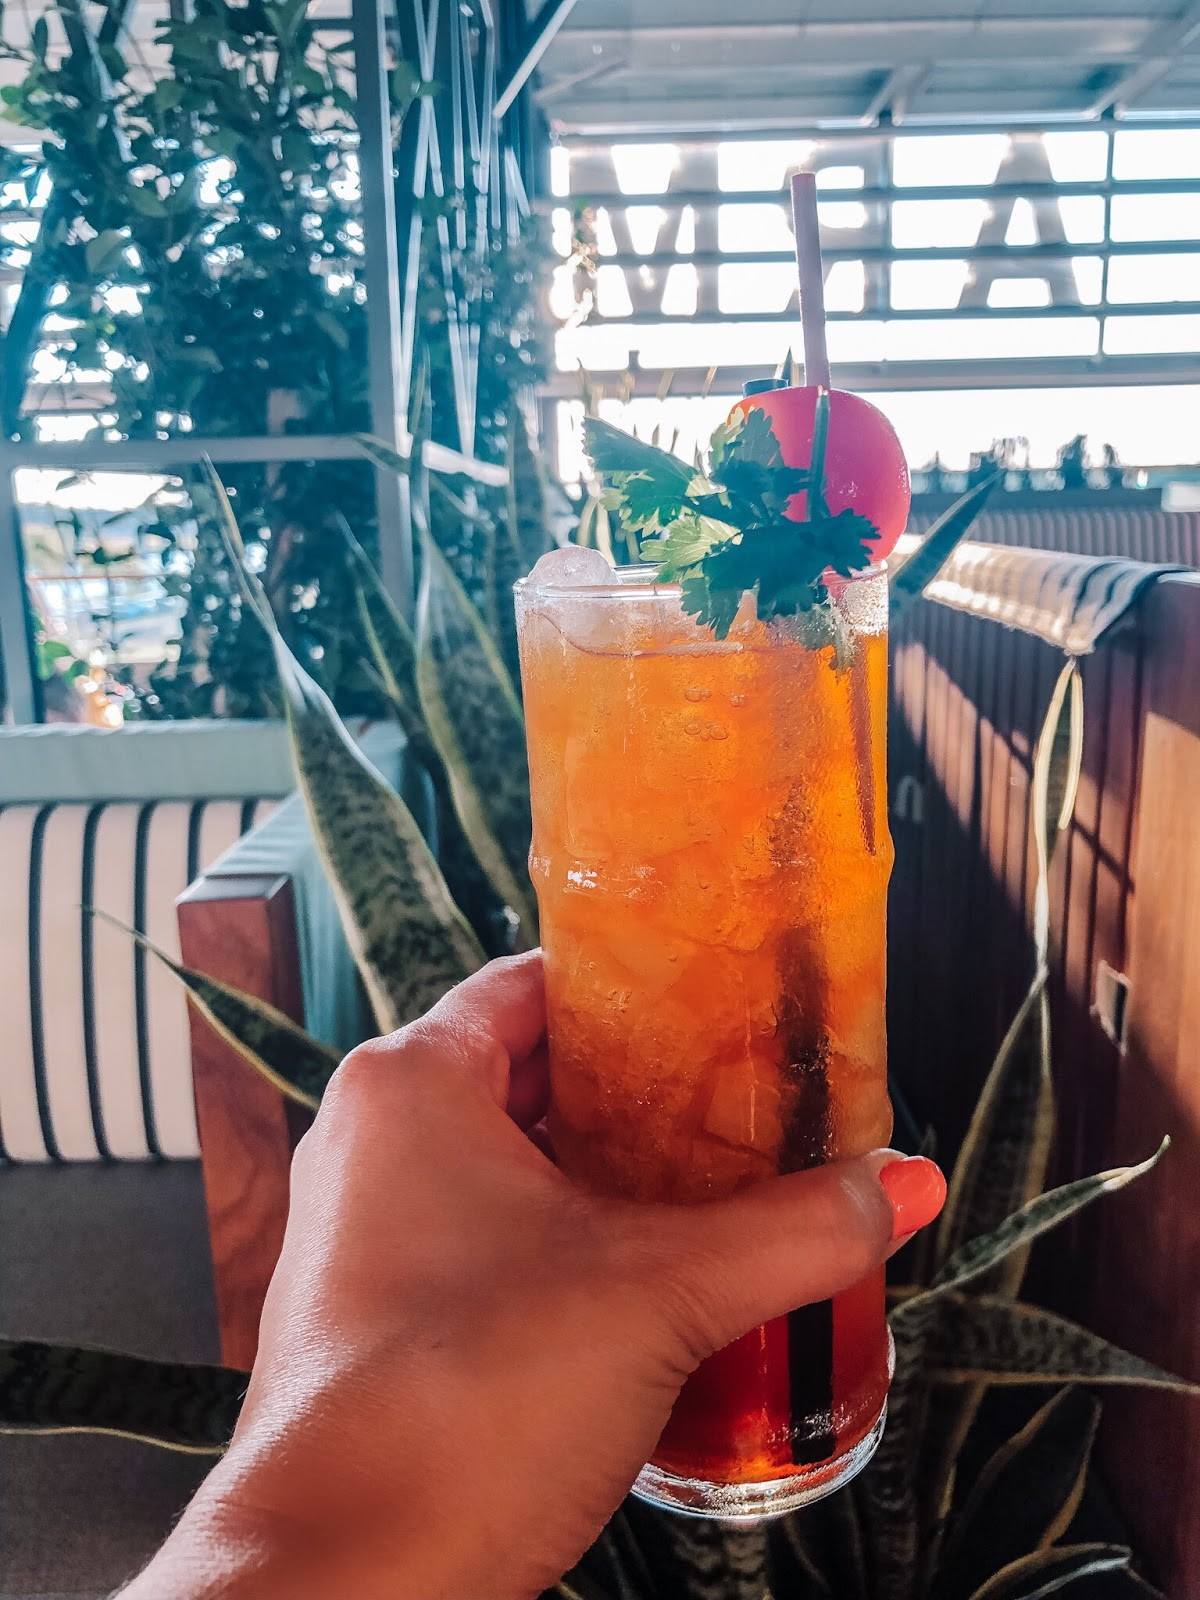 The West Denver Swizzle at M.Bird, the new rooftop bar on top of Armature Works in Tampa, Florida